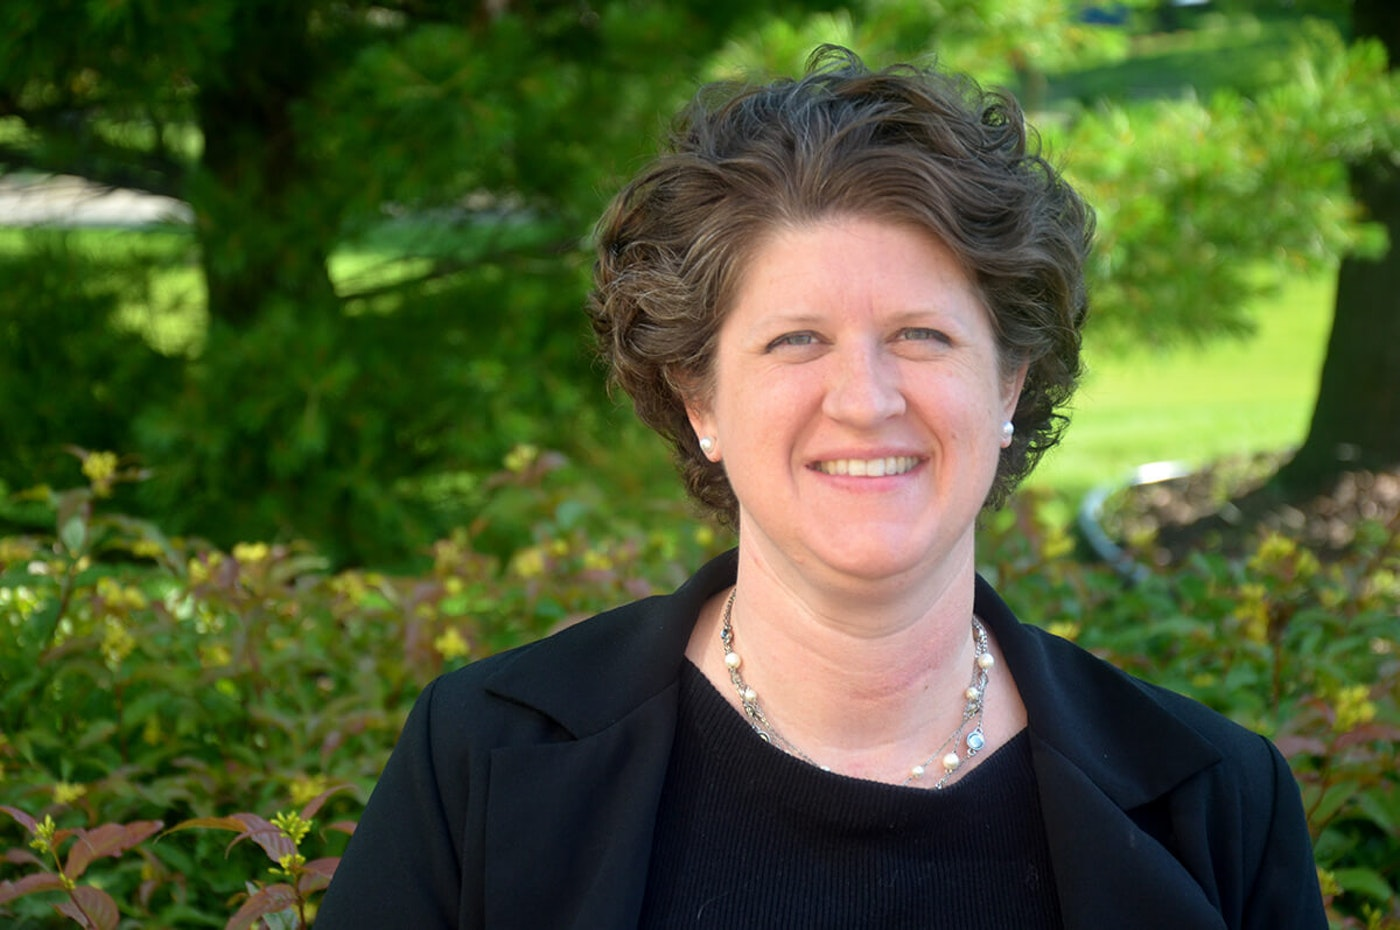 Jill Underly will become Wisconsin's next State Superintendent of Public Instruction. (Photo provided)